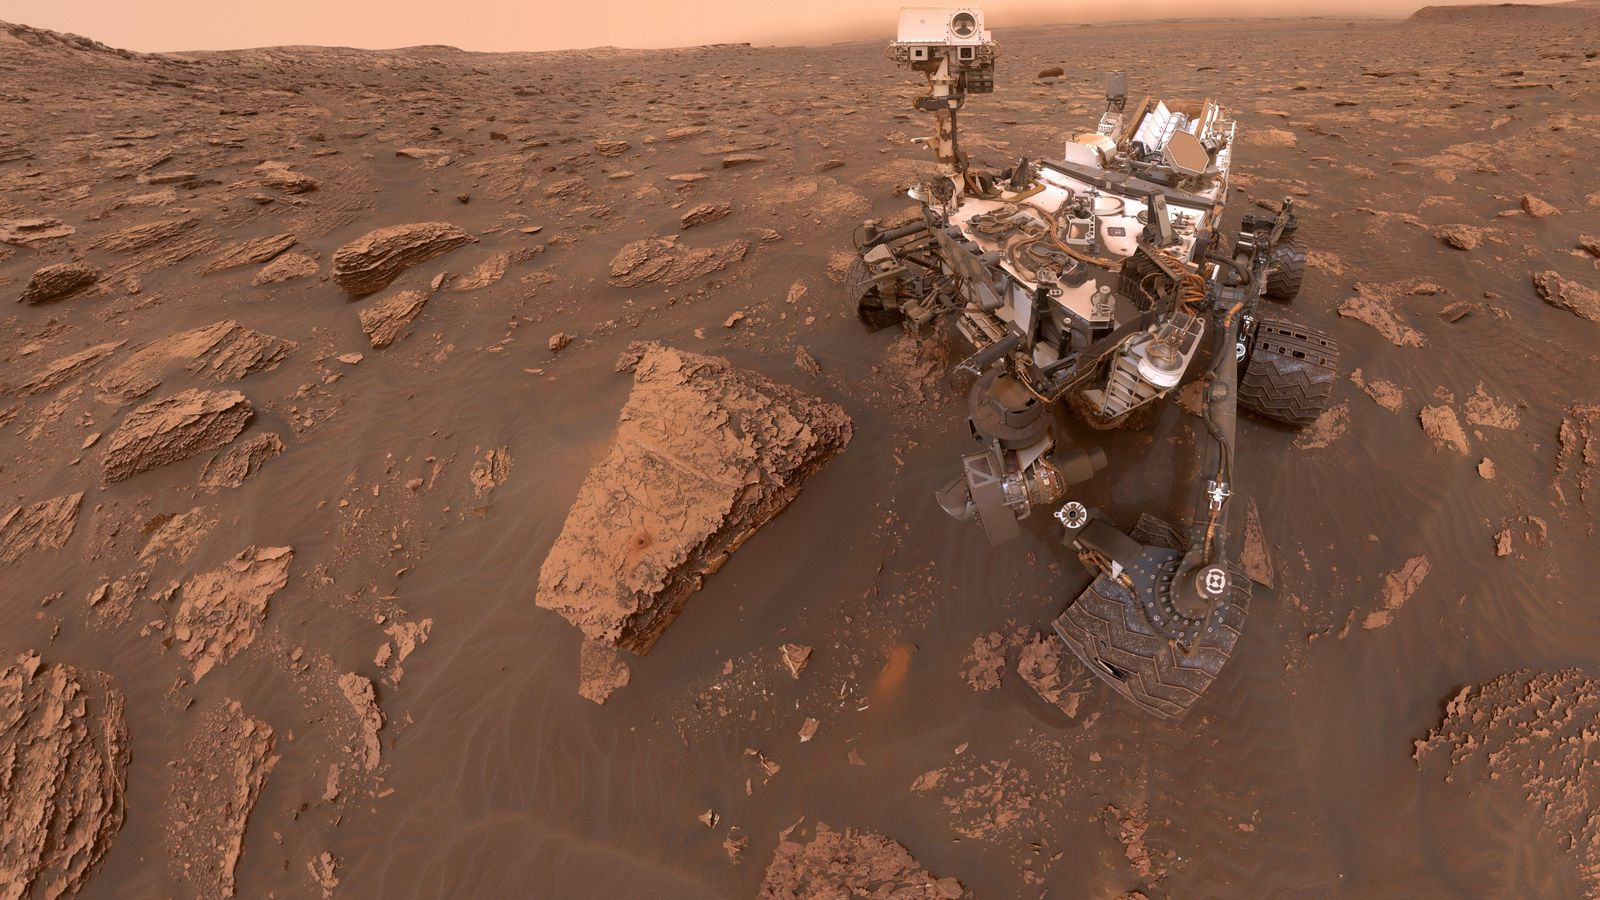 Dust storms encircles the whole planet; Curiosity is safe but Opportunity rover has been turned off